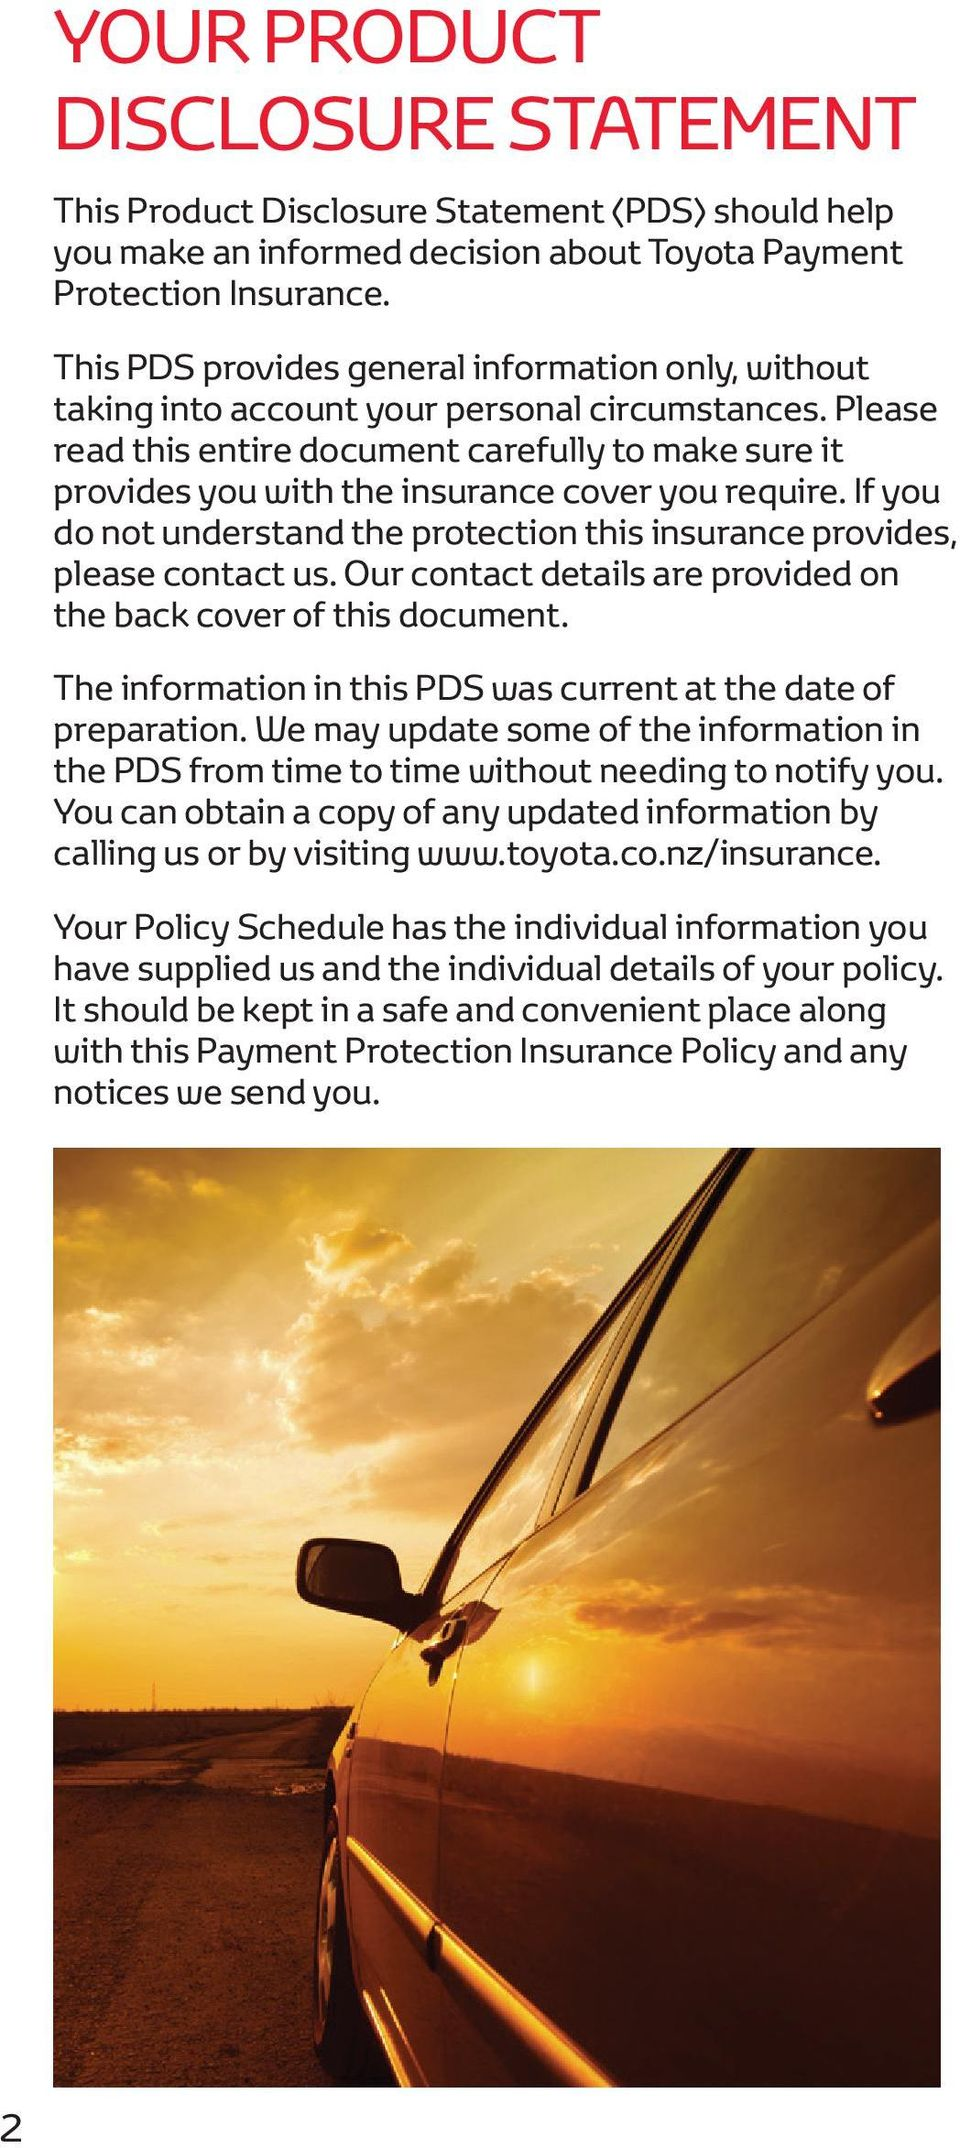 Please read this entire document carefully to make sure it provides you with the insurance cover you require. If you do not understand the protection this insurance provides, please contact us.